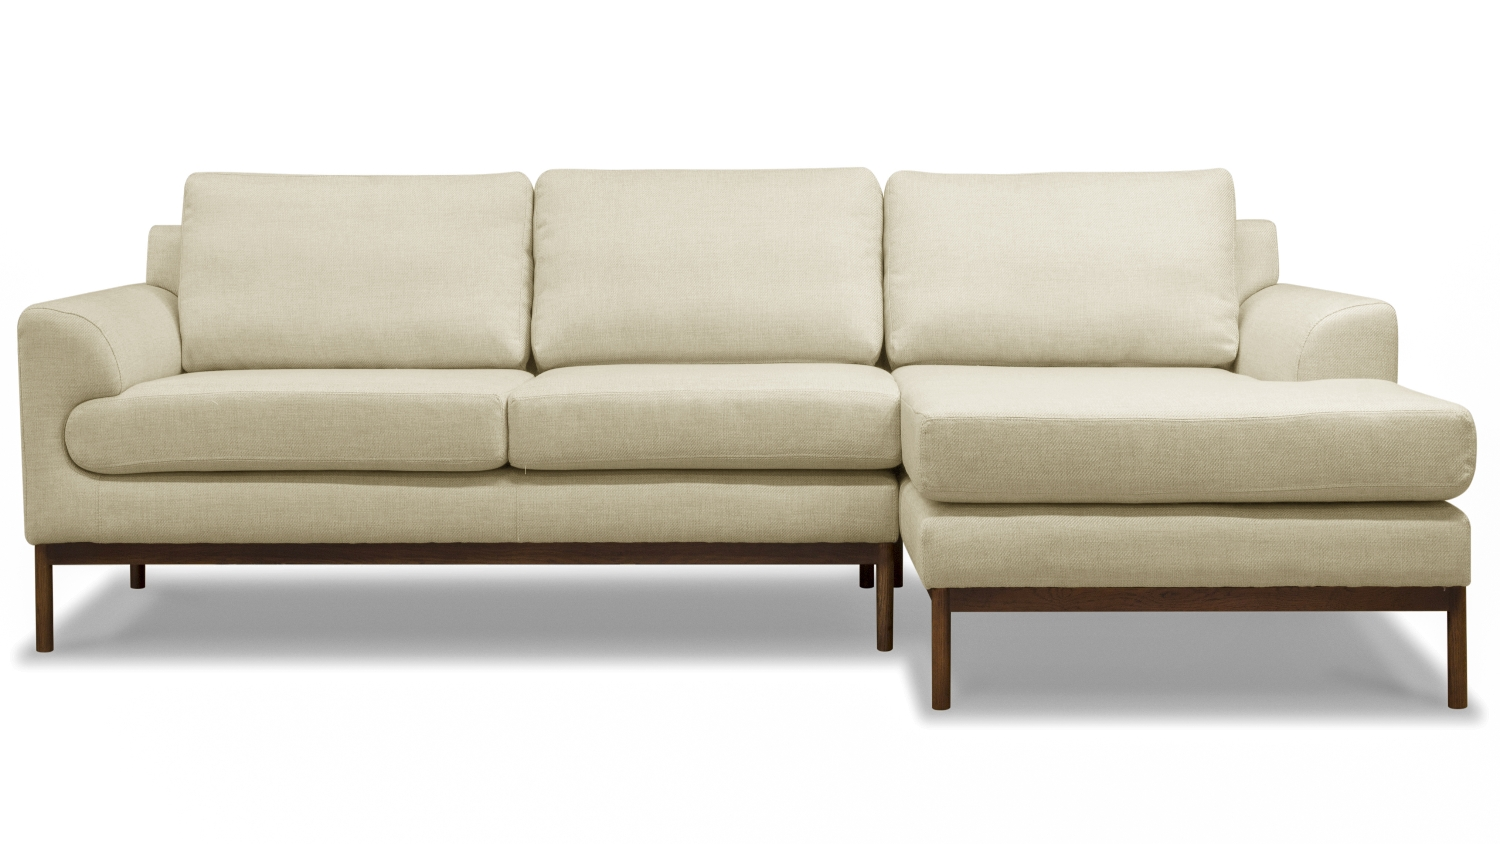 stockholm 3 seater sofa with chaise beige harvey